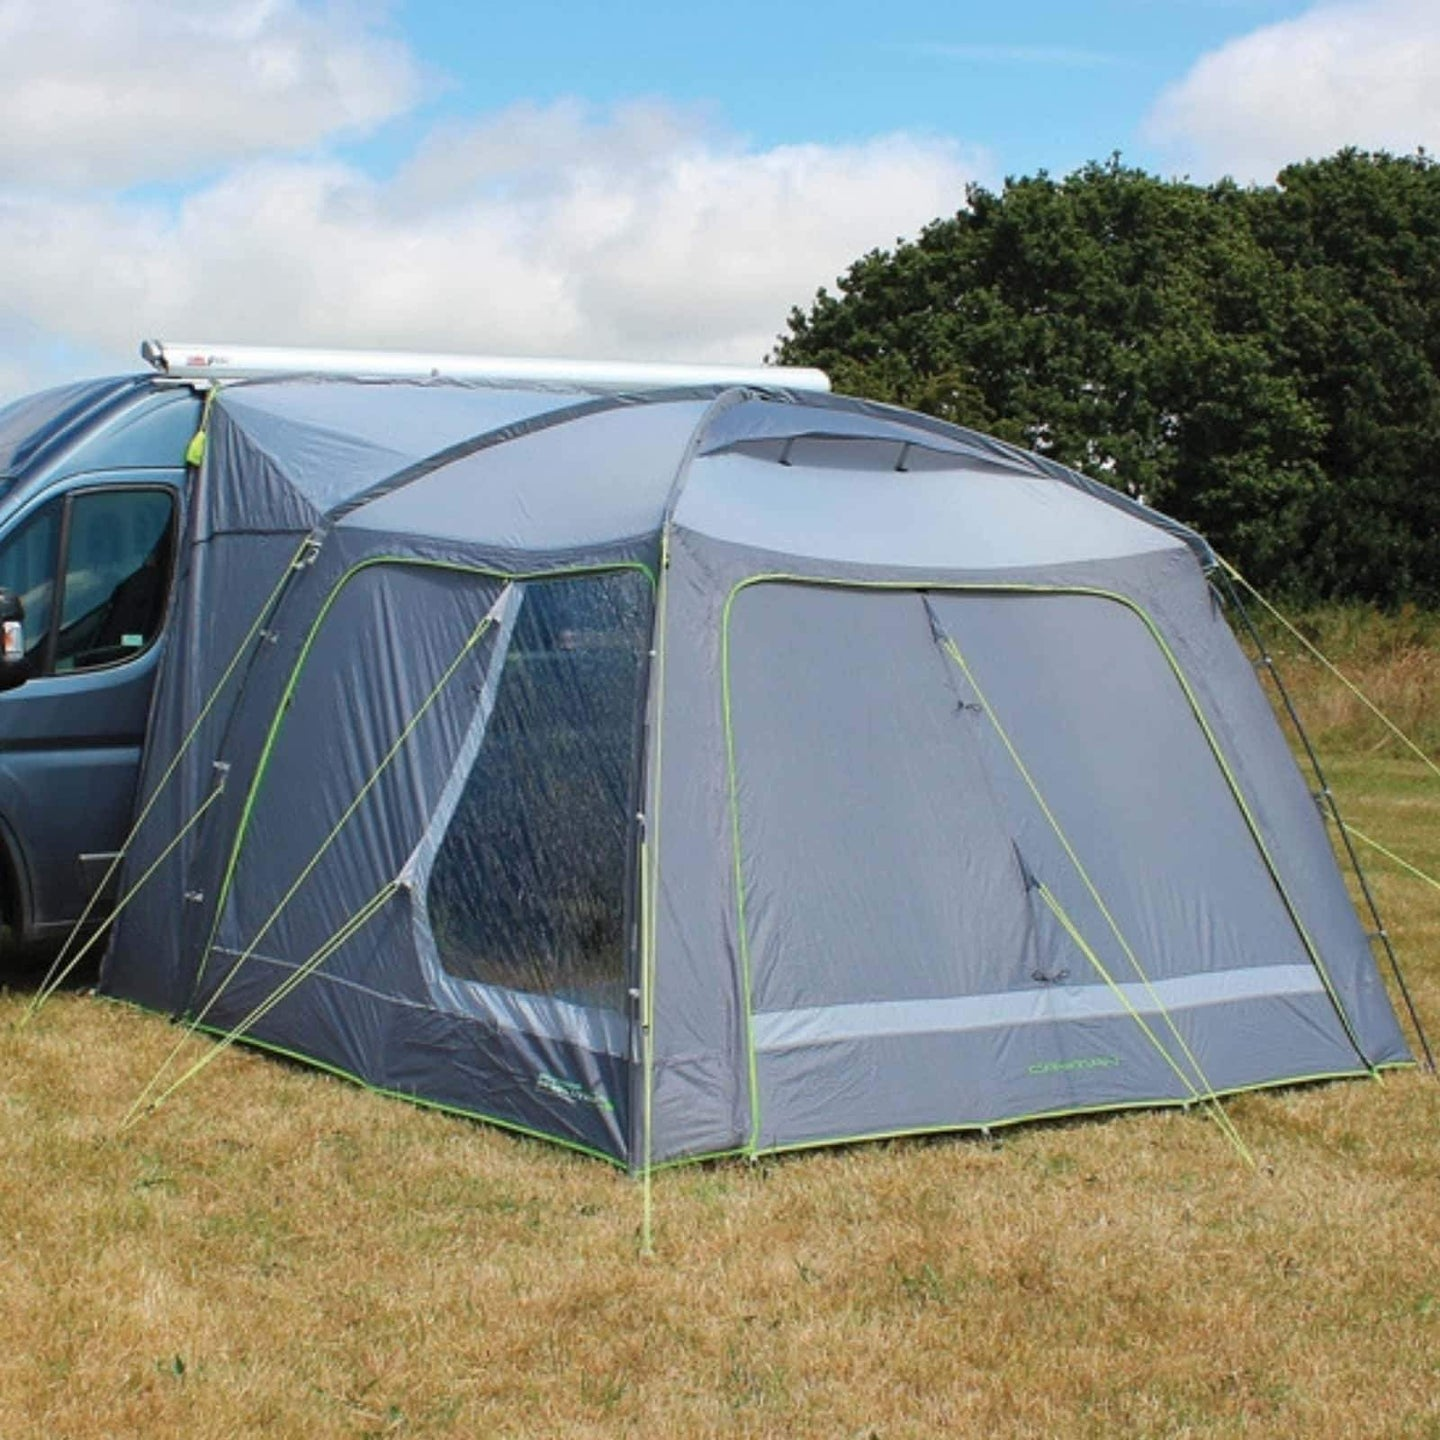 Outdoor Revolution Cayman Lowline Poled Driveaway Awning ORBK7400 (2019) made by Outdoor Revolution. A Drive-away Awning sold by Quality Caravan Awnings